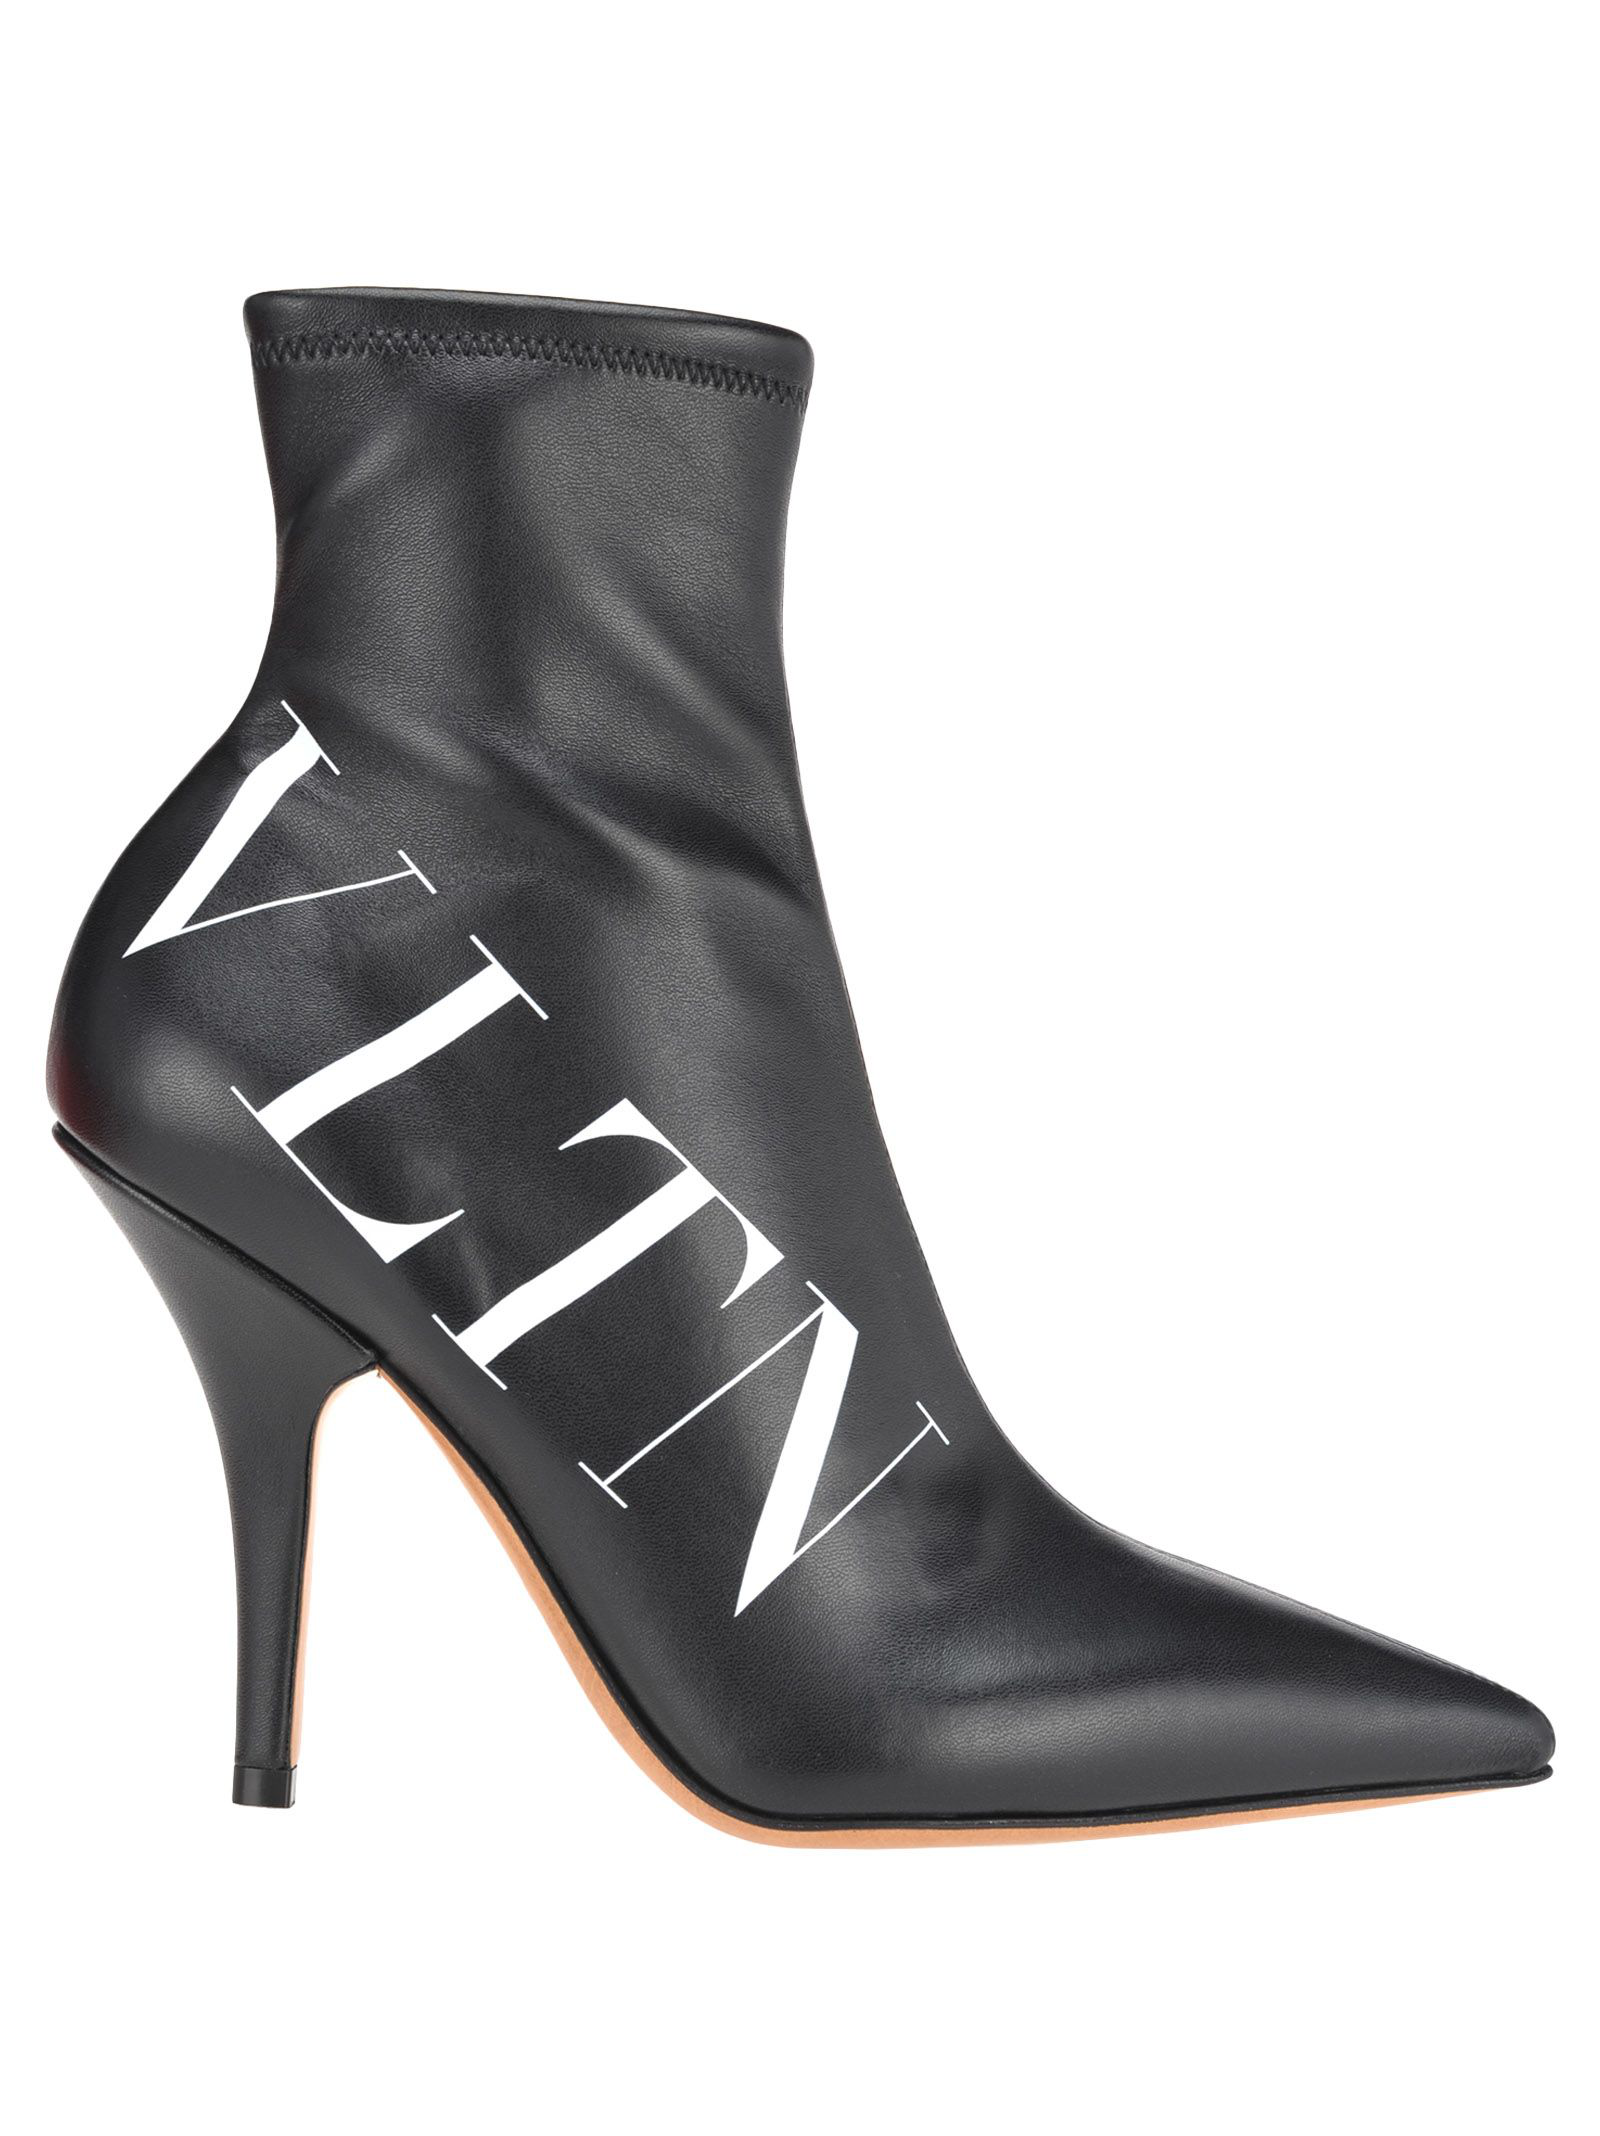 86fee989634 100Mm Vltn Stretch Faux Leather Boots in Black